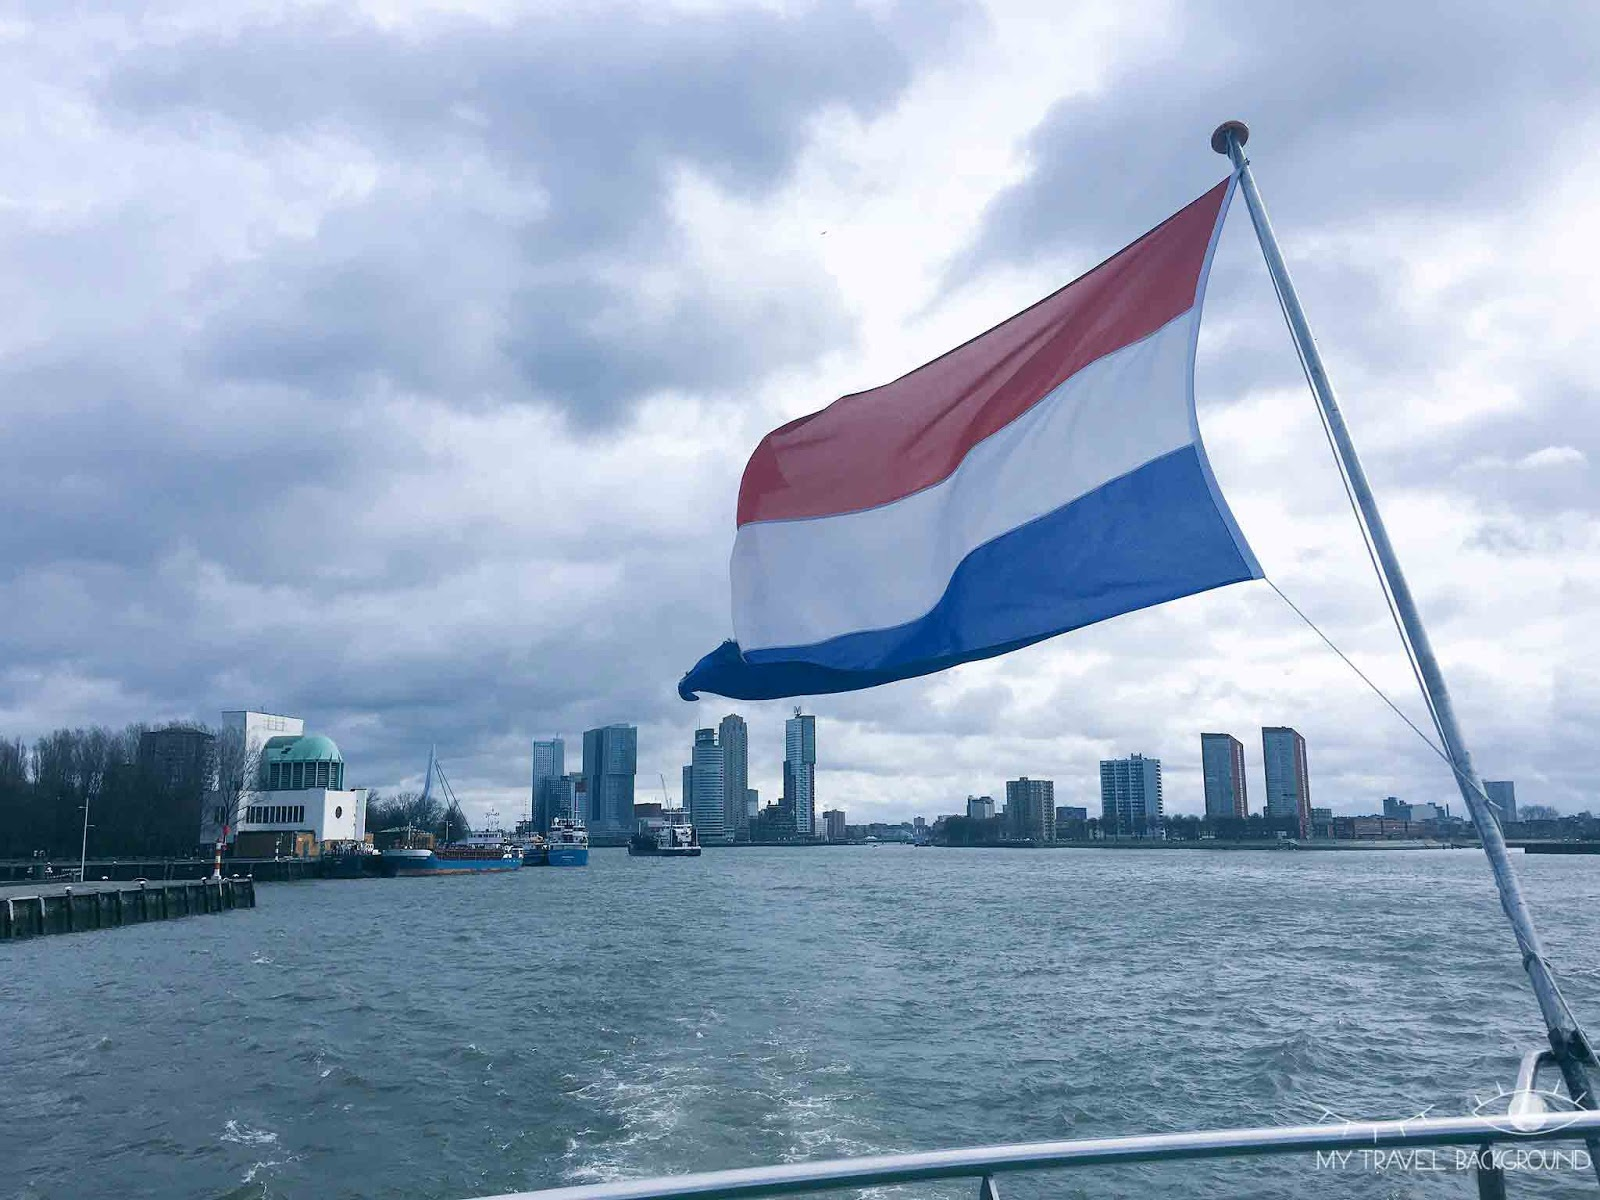 My Travel Background : 6 villes et villages découverts en 2016 - Rotterdam, Pays-Bas